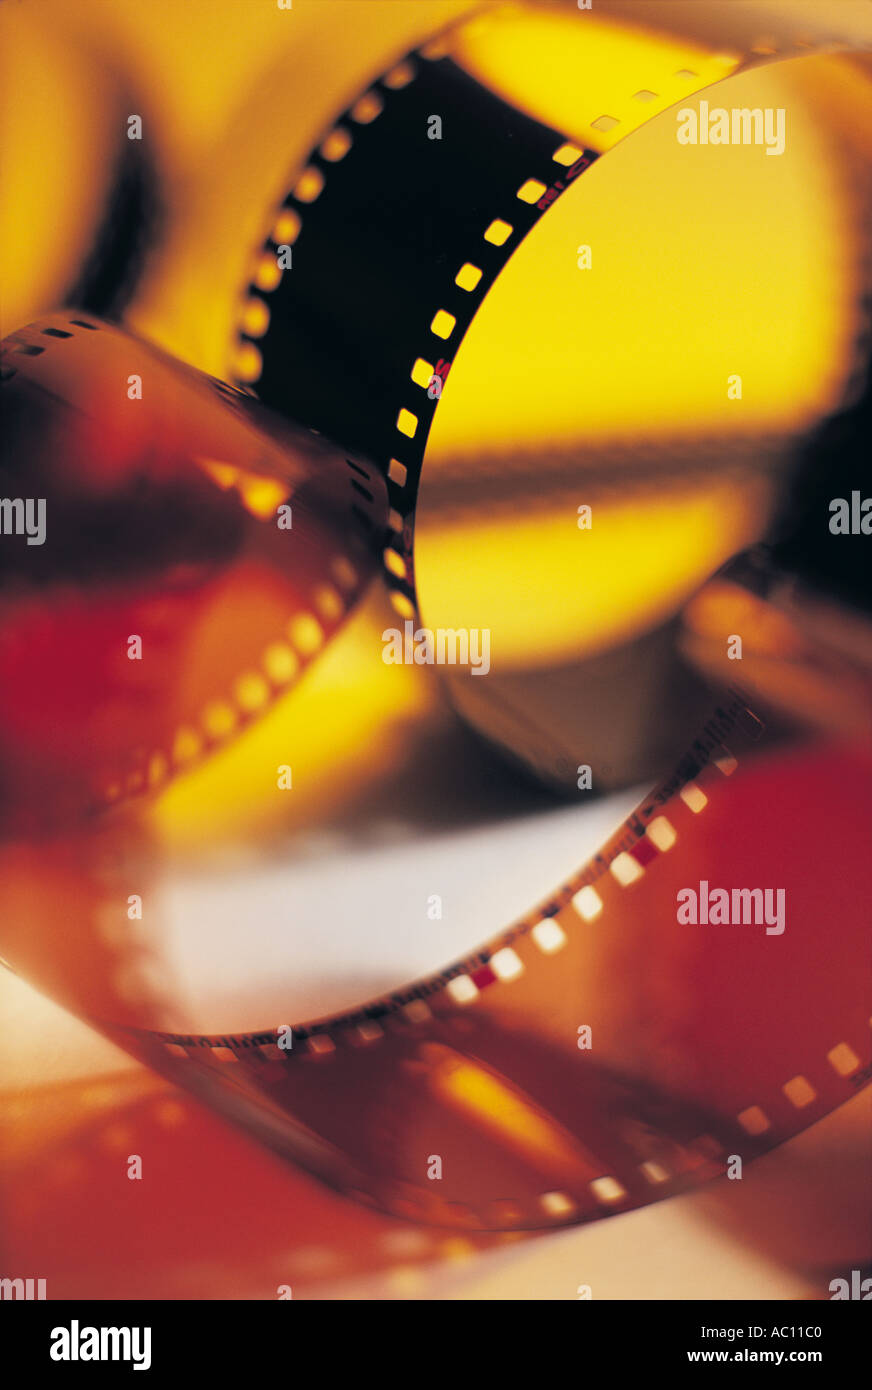 Film Strips - Stock Image